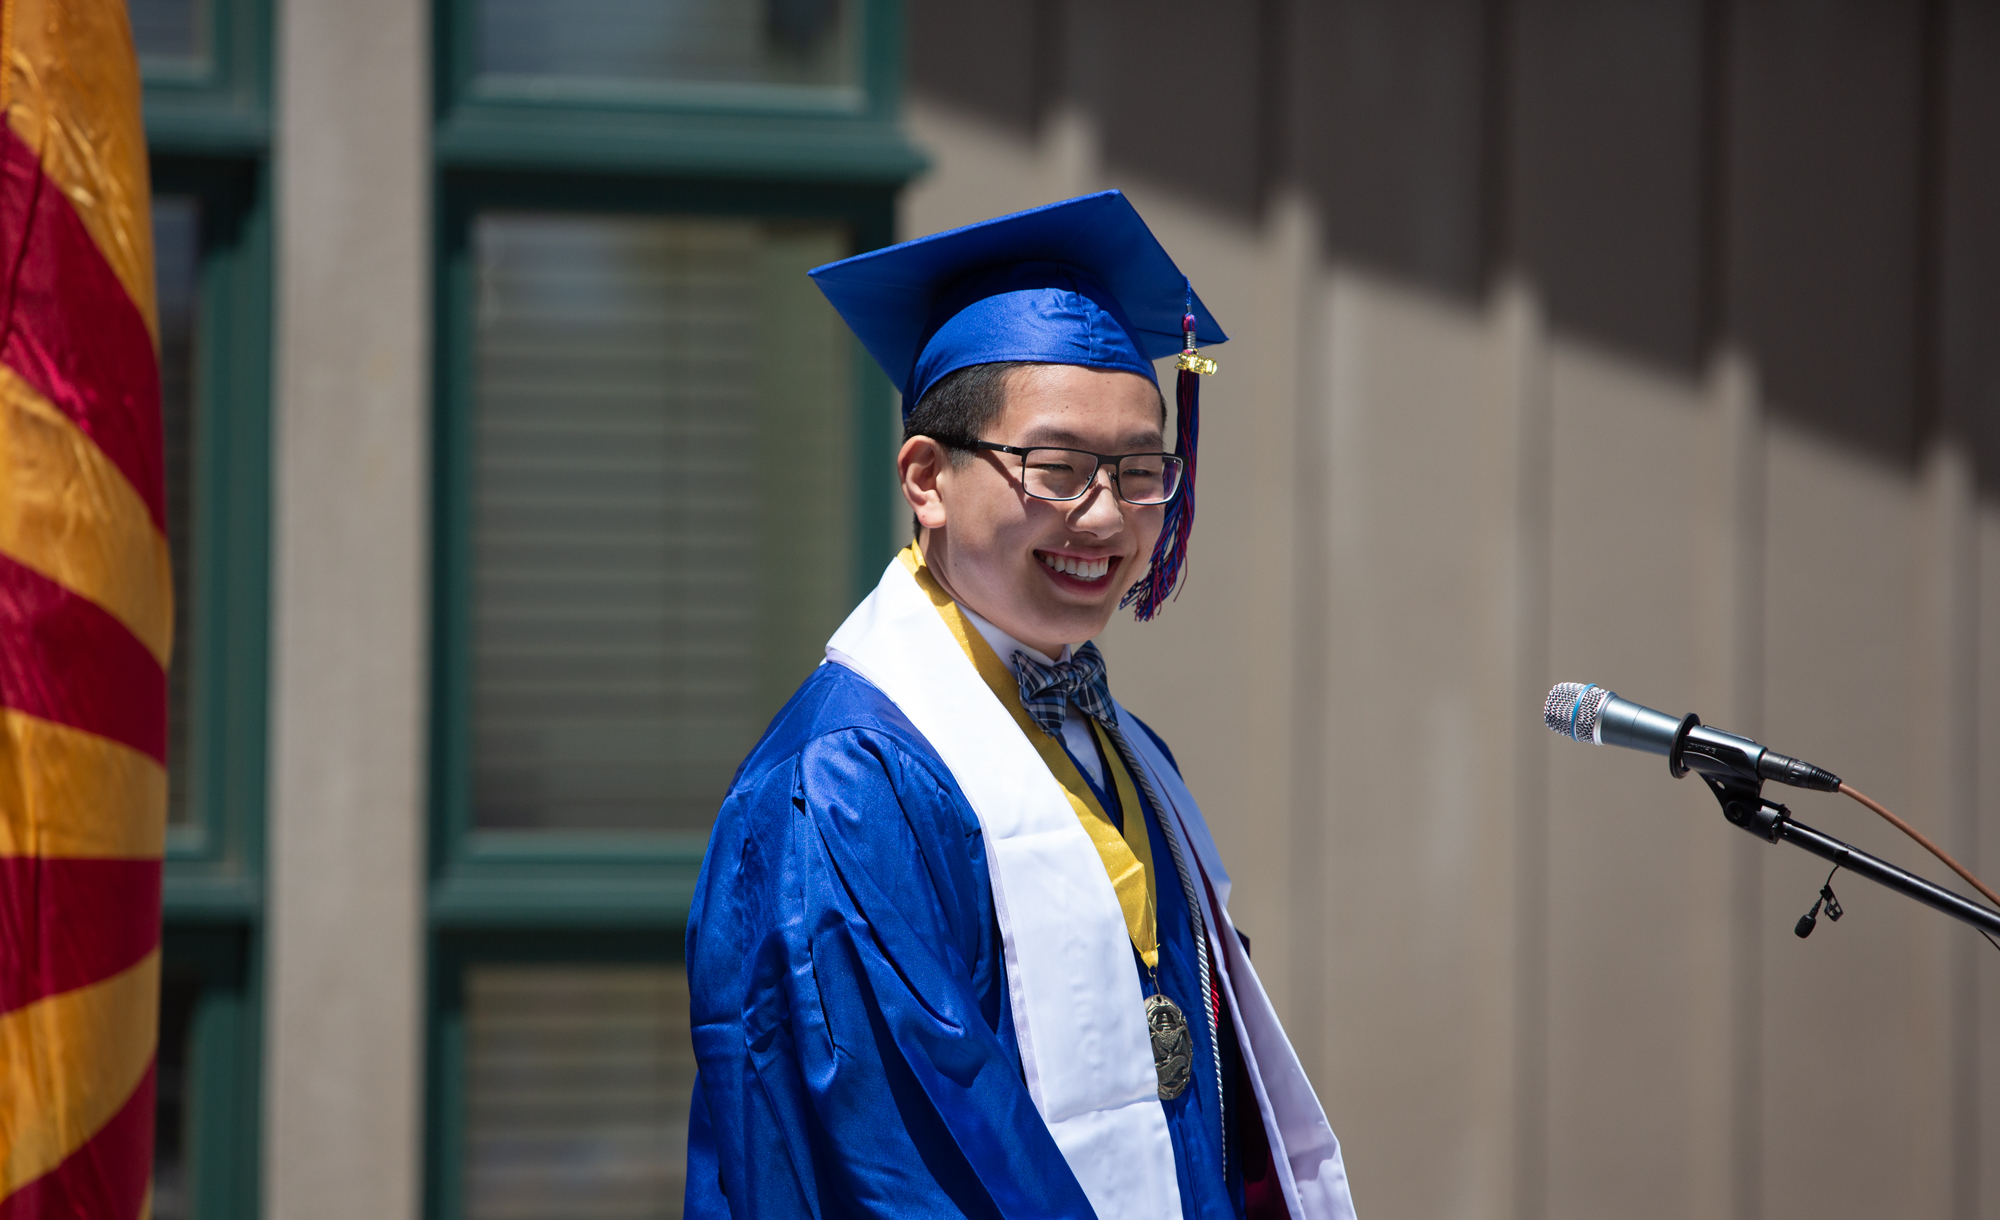 The Northland Preparatory Academy Class of 2020 had a modifiied graduation ceremony due to the Coronavirus on May21, 2020. Photo by Sean Openshaw / www.SeanOpenshaw.com